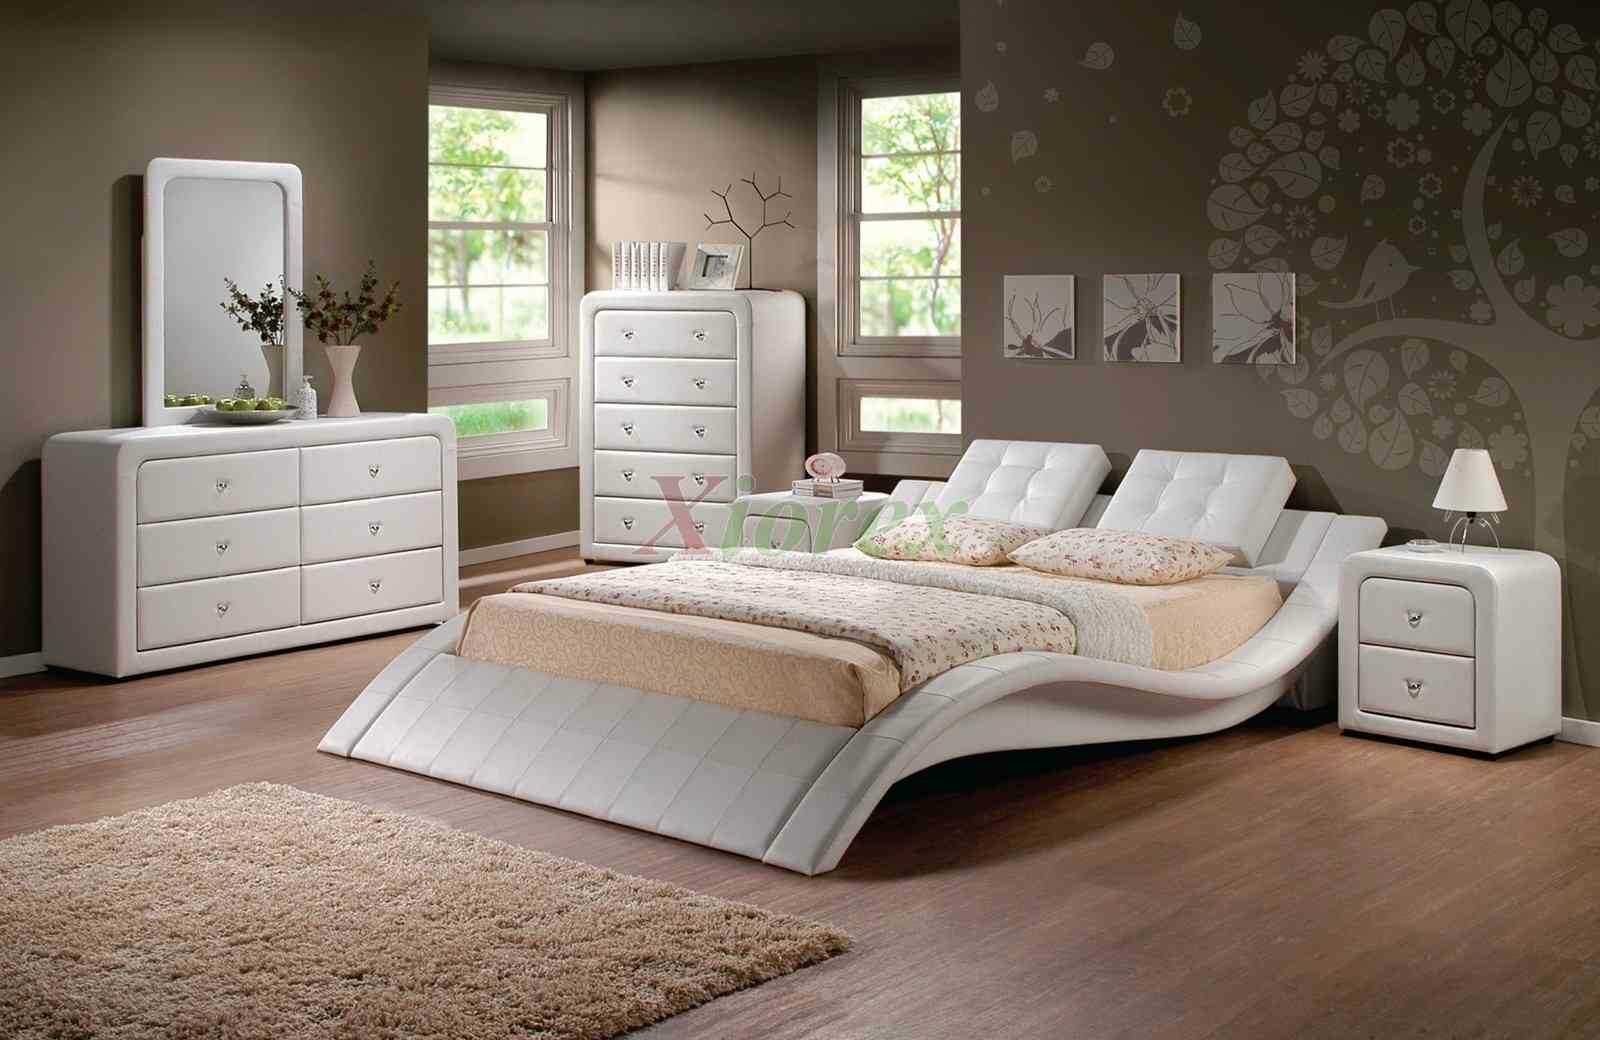 craigslist bed craigslist bedroom sets craigslist beds for sale - Picture Of Furniture For Bedroom